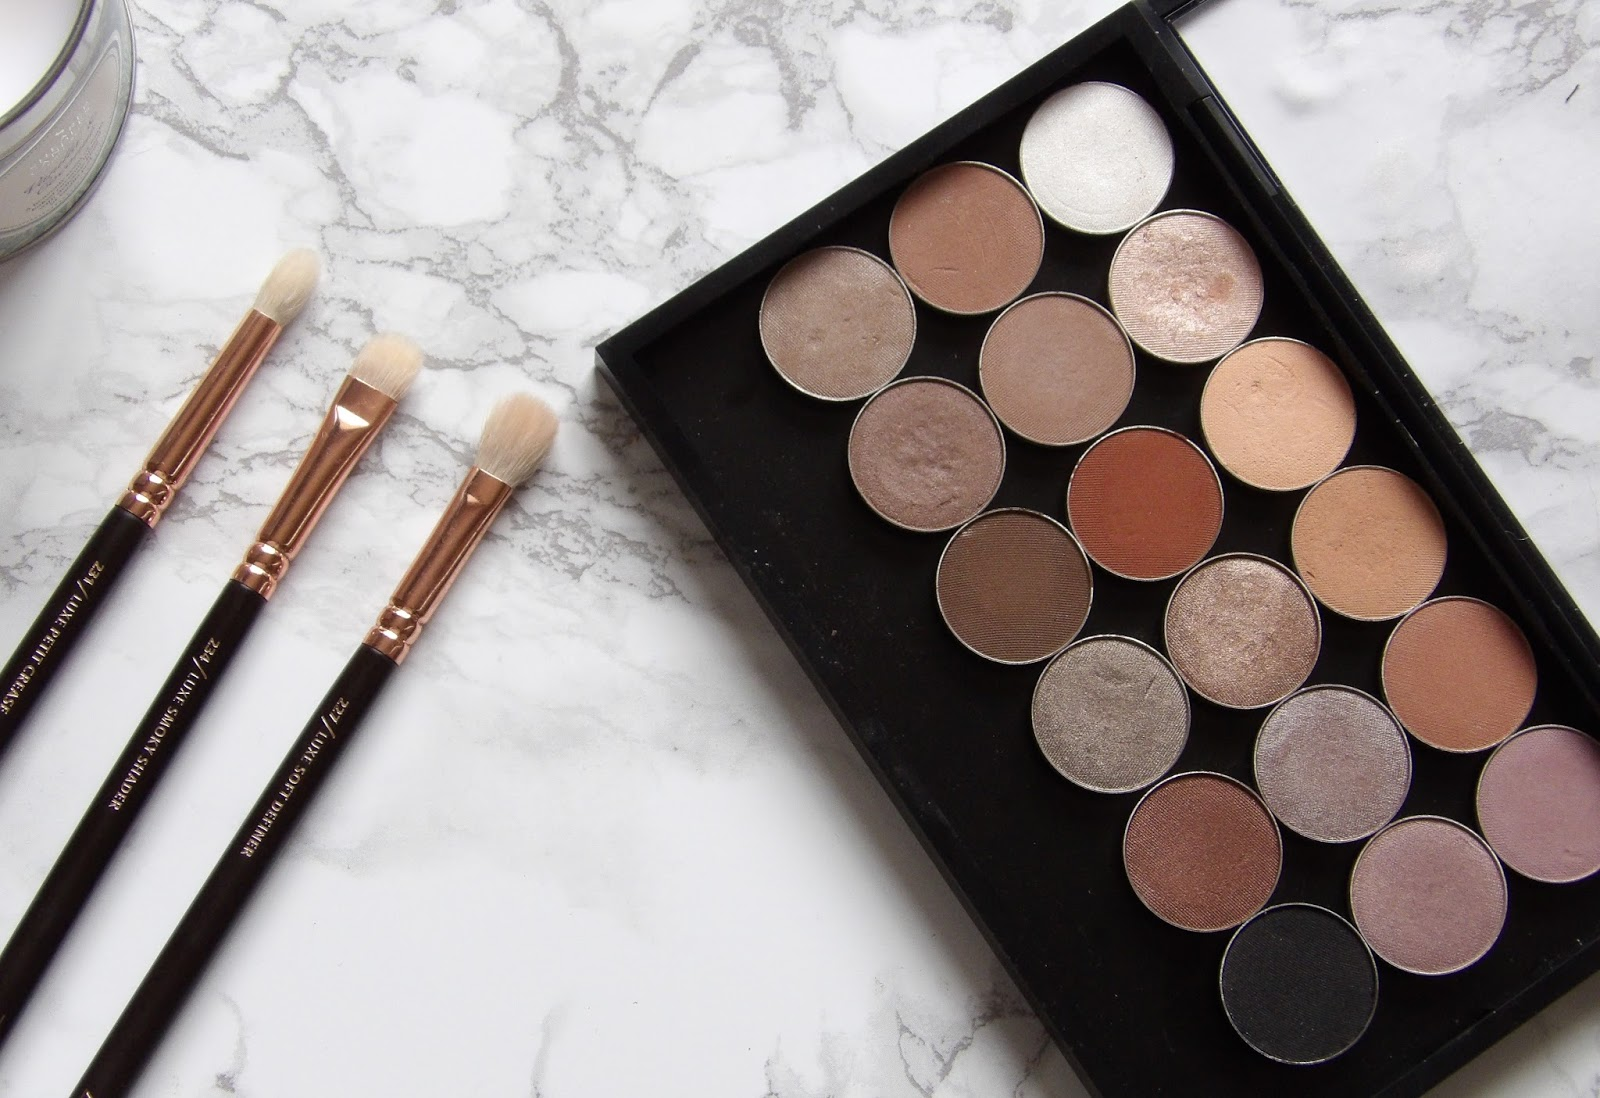 MY MAKEUP GEEK EYESHADOW COLLECTION | REVIEW & SWATCHES